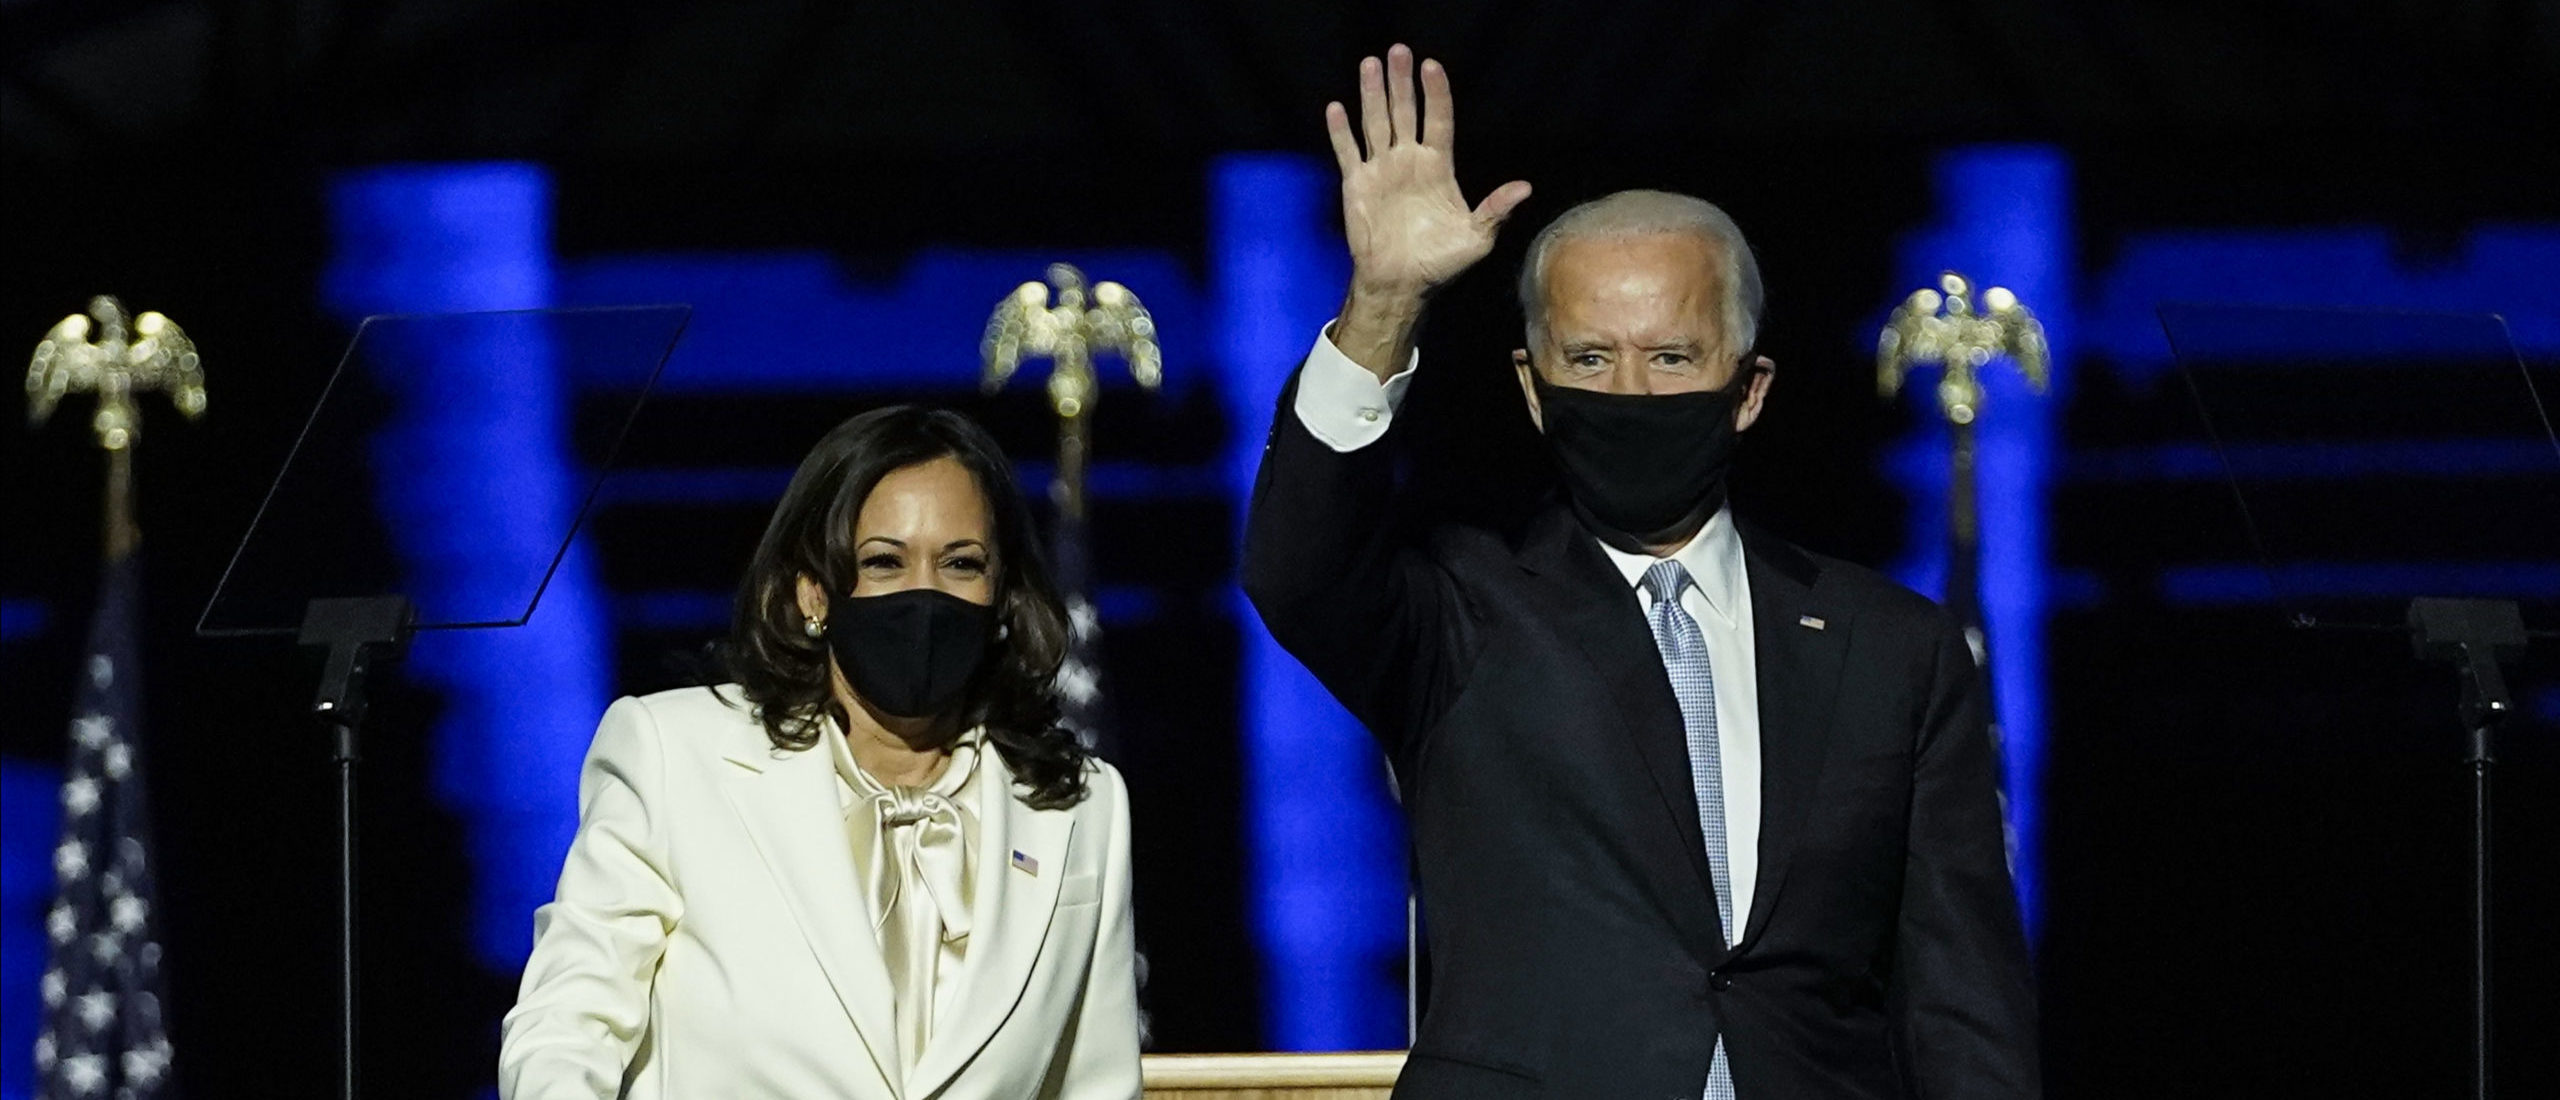 President-elect Joe Biden and Vice President-elect Kamala Harris take the stage at the Chase Center to address the nation November 07, 2020 in Wilmington, Delaware. After four days of counting the high volume of mail-in ballots in key battleground states due to the coronavirus pandemic, the race was called for Biden after a contentious election battle against incumbent Republican President Donald Trump. (Photo by Andrew Harnik-Pool/Getty Images)